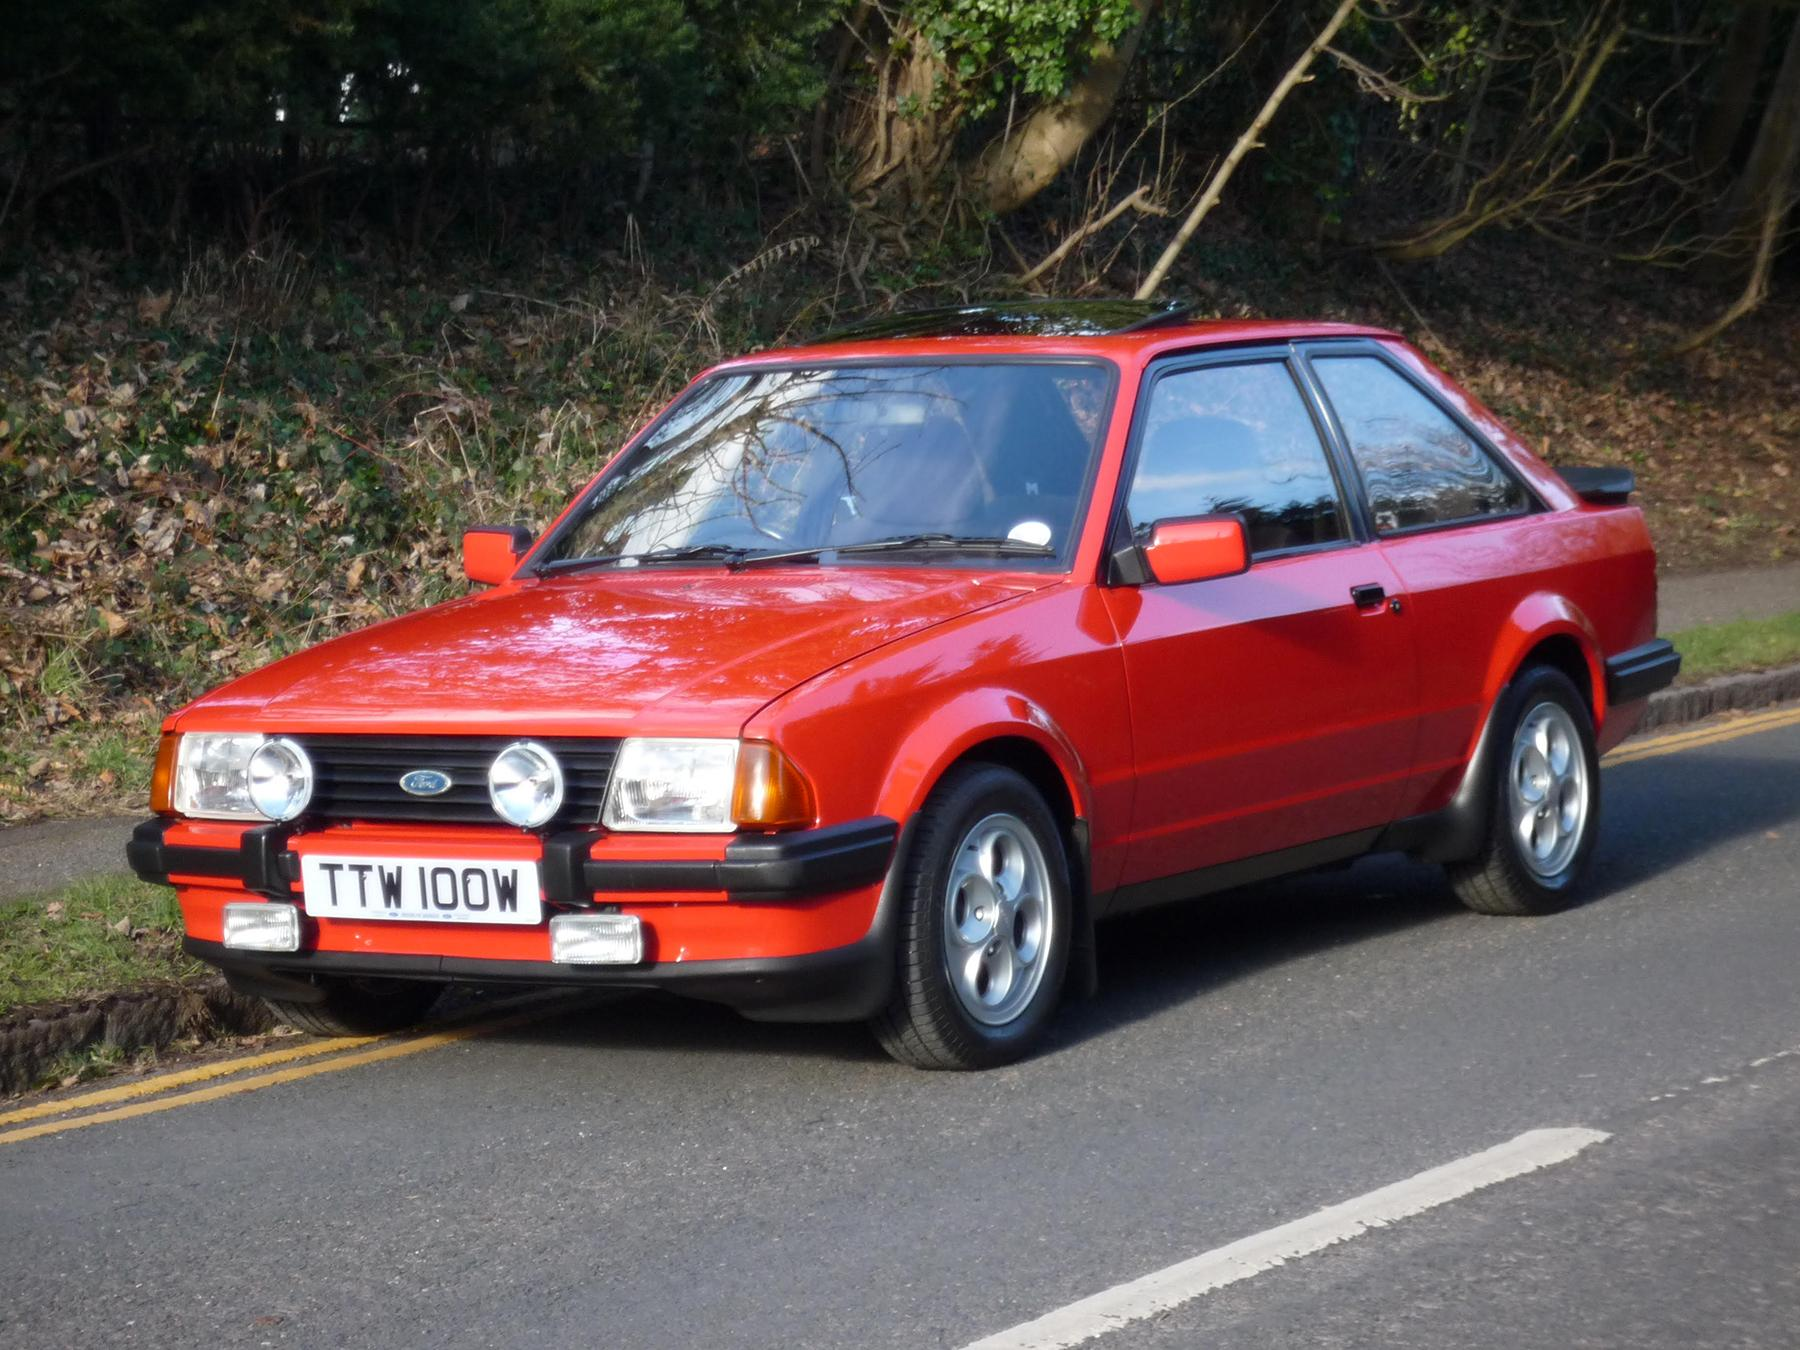 Oldest Escort XR3 in the UK up for auction